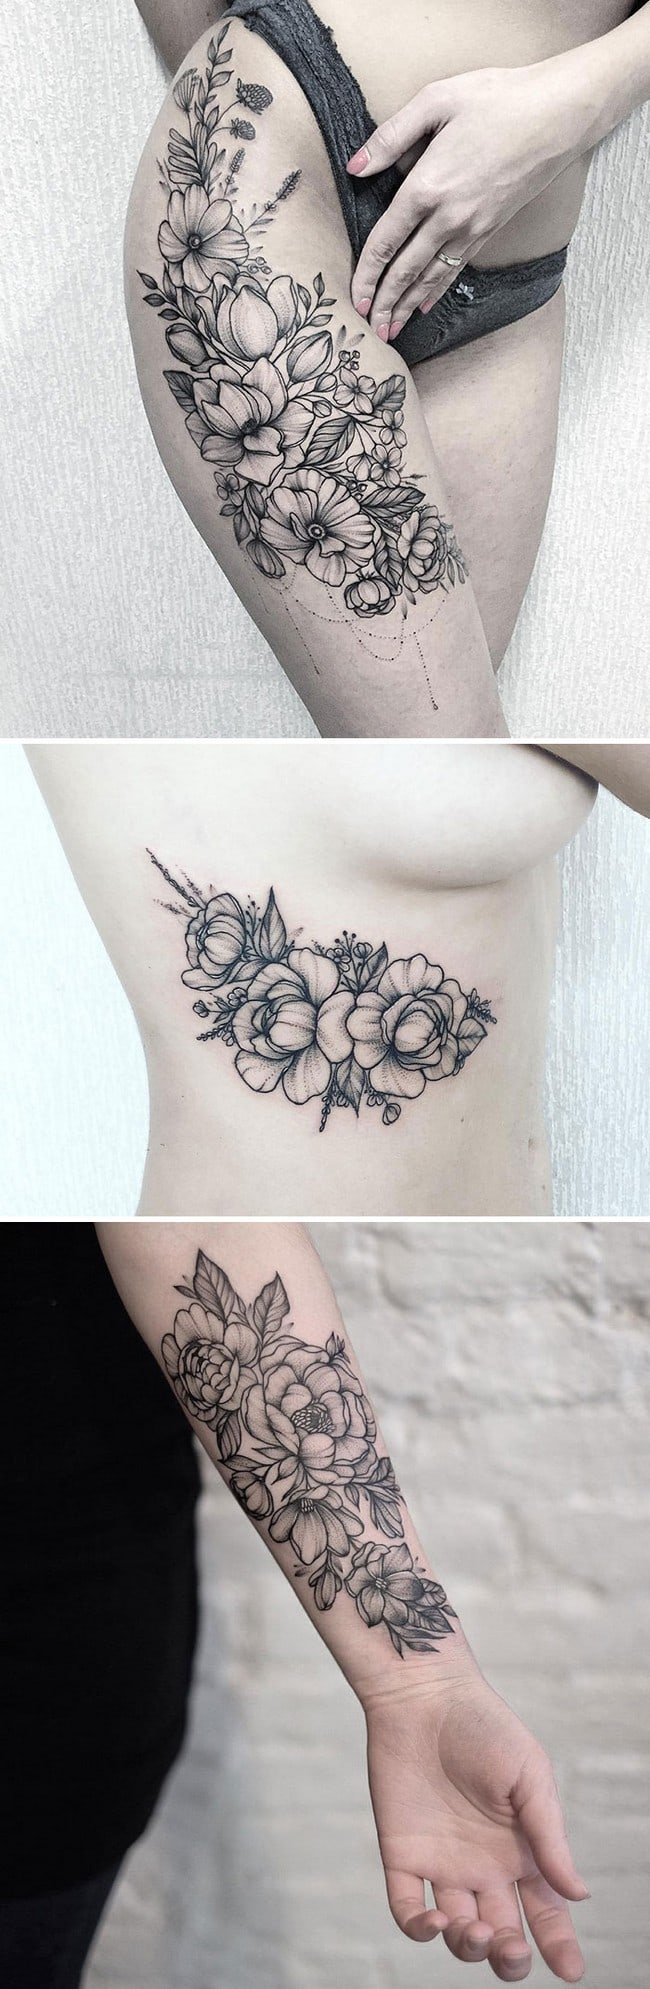 floral tattoo art nastya mysh